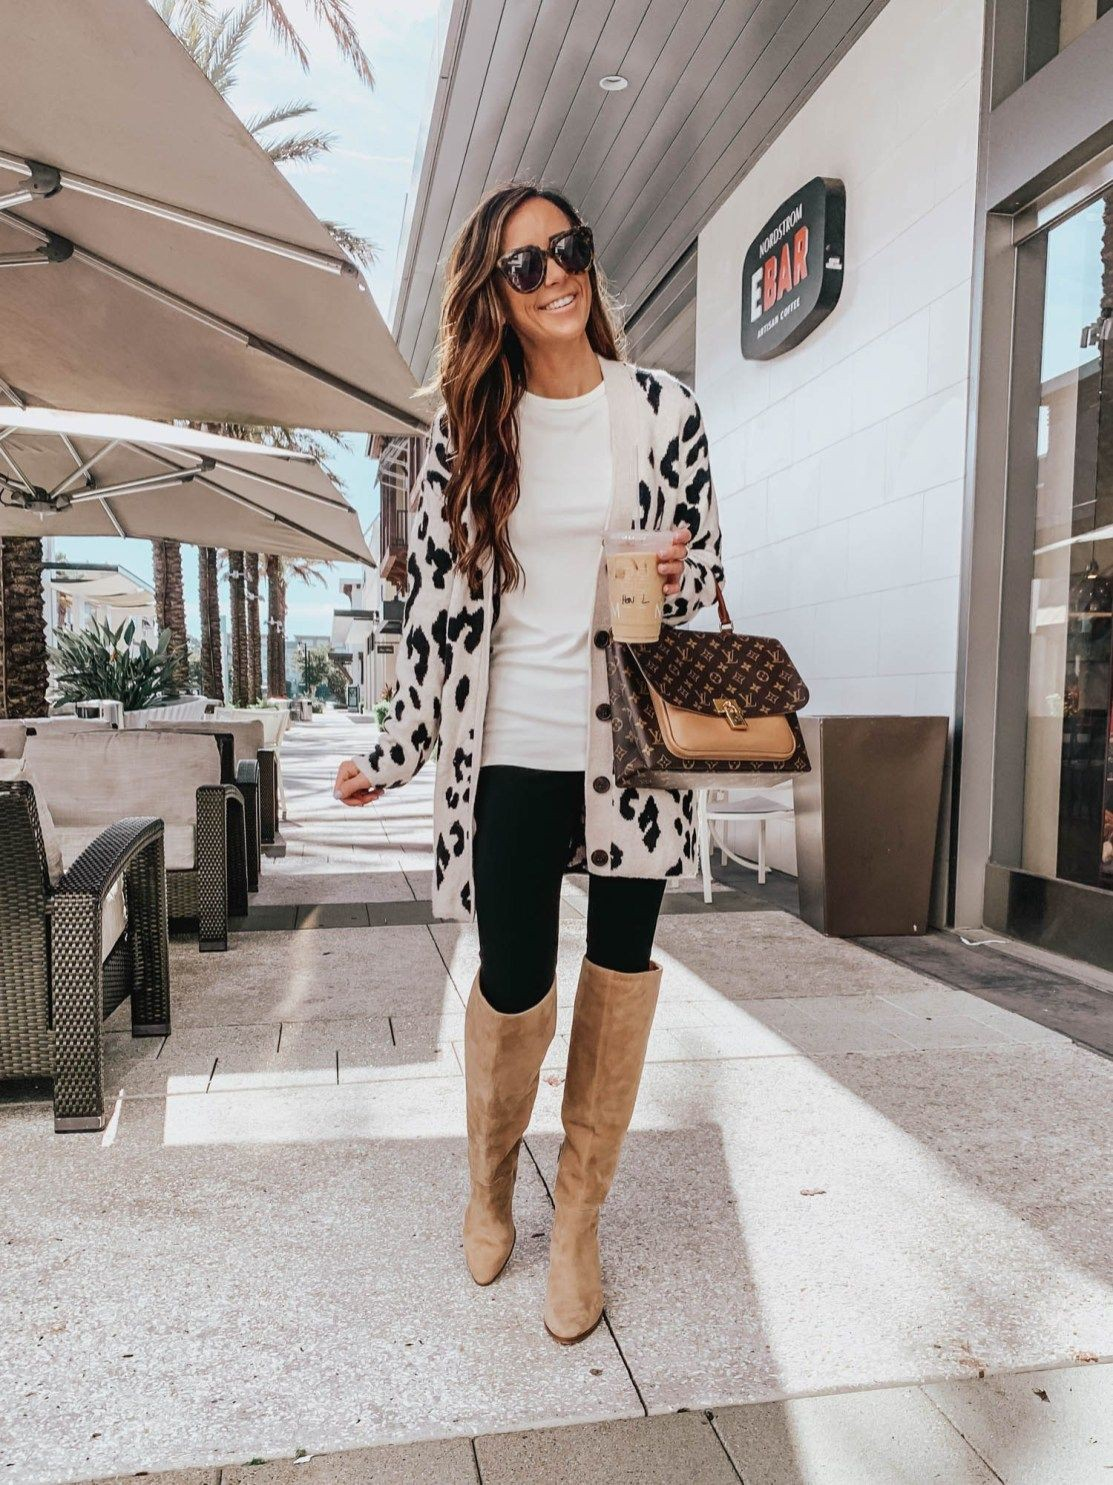 Black and white colour combination with shorts, blazer, jeans